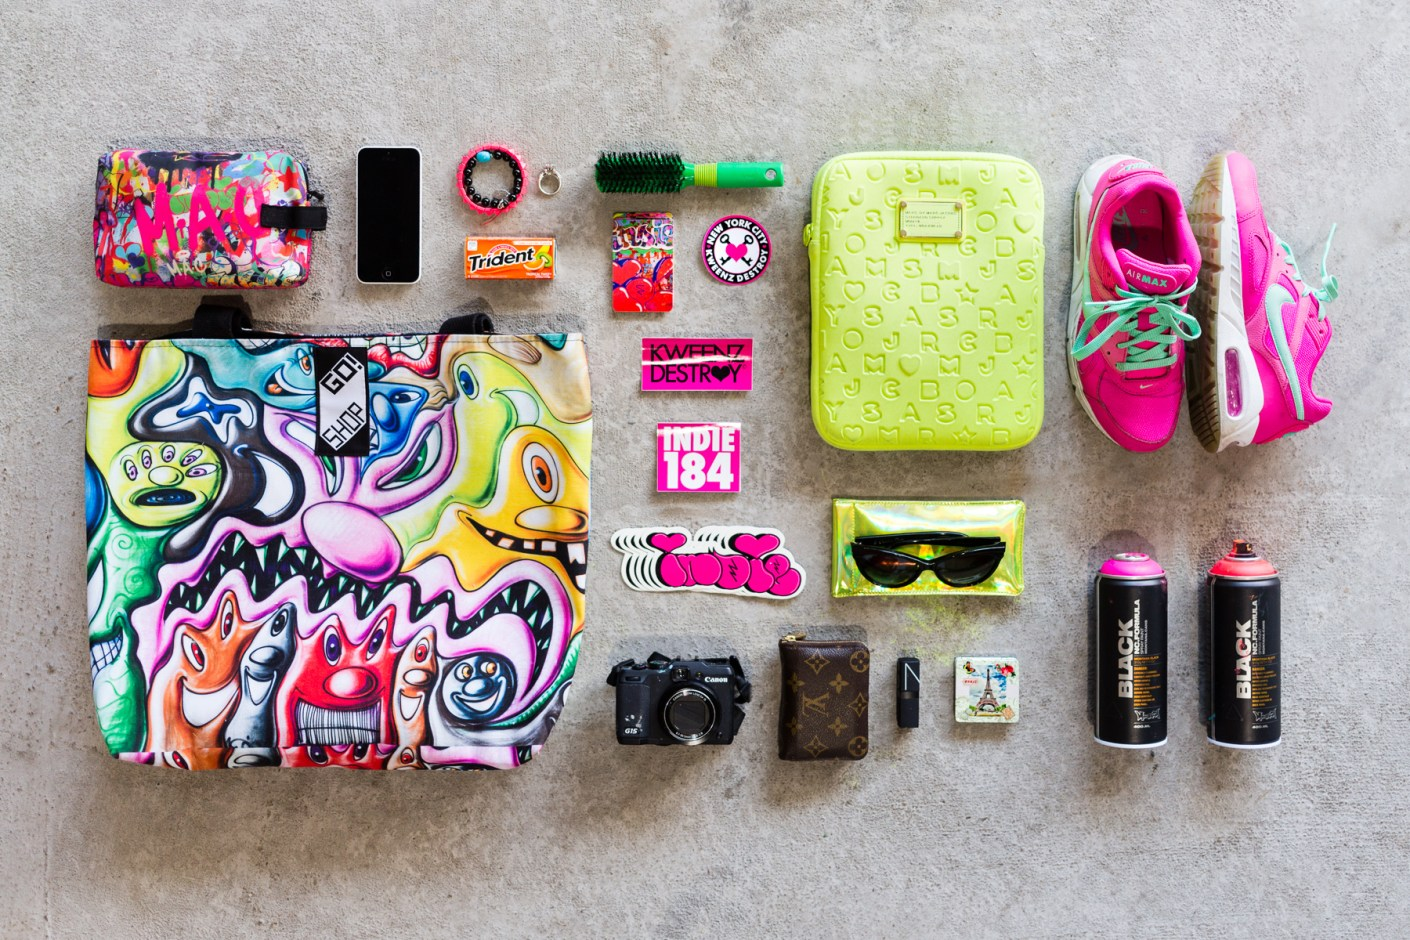 Image of Essentials: INDIE184